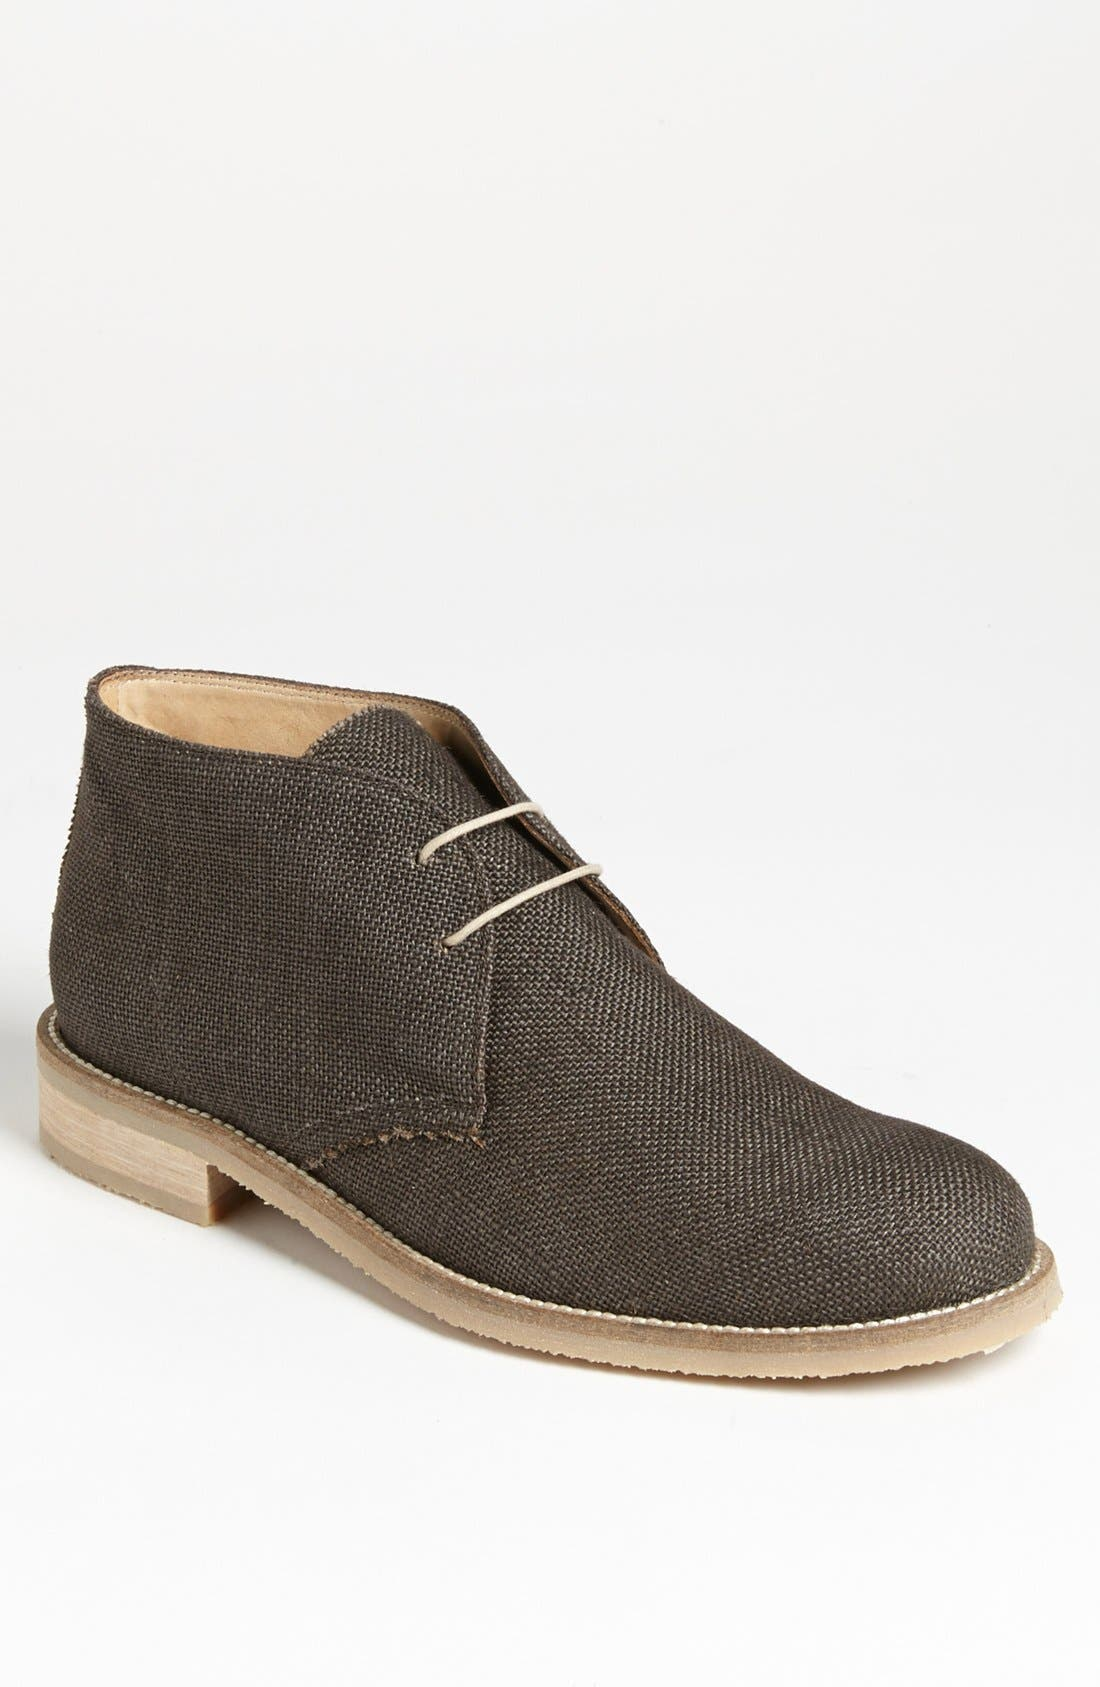 Alternate Image 1 Selected - Thomas Dean Linen Chukka Boot